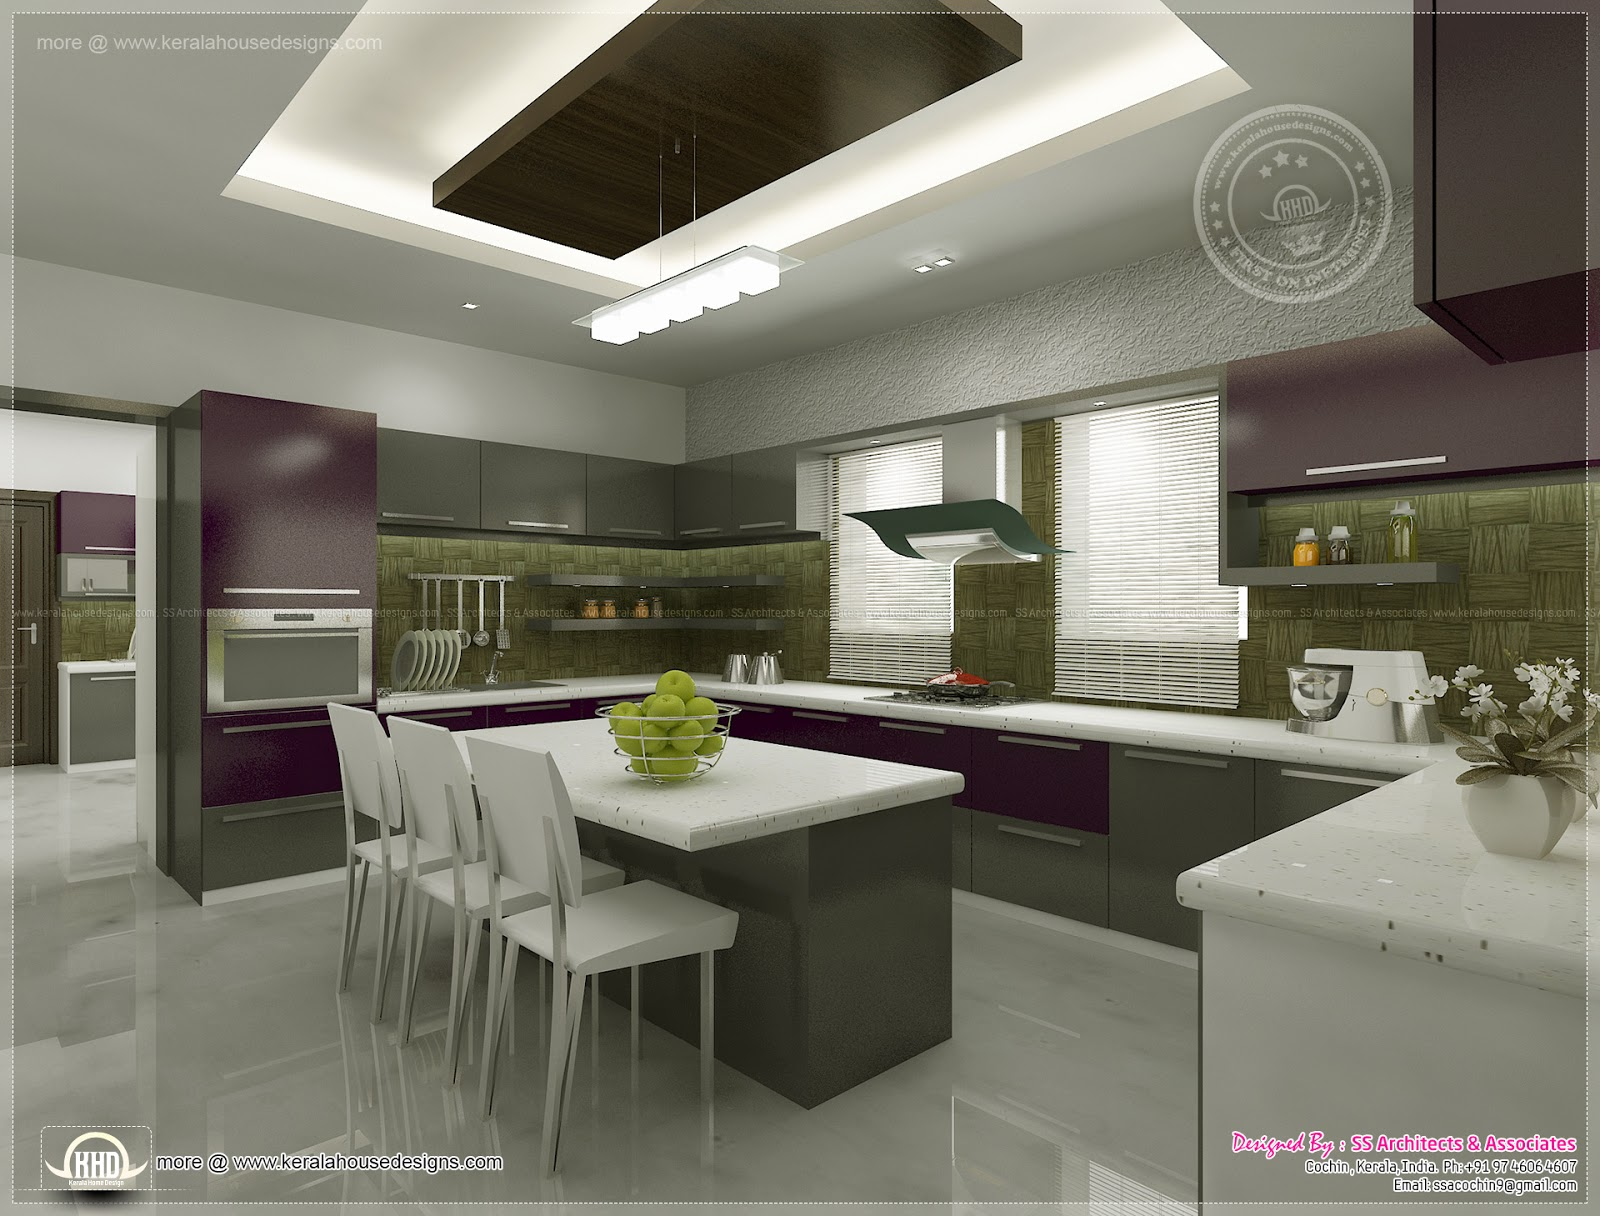 Kitchen interior views by ss architects cochin kerala for Interior decoration pictures kitchen indian